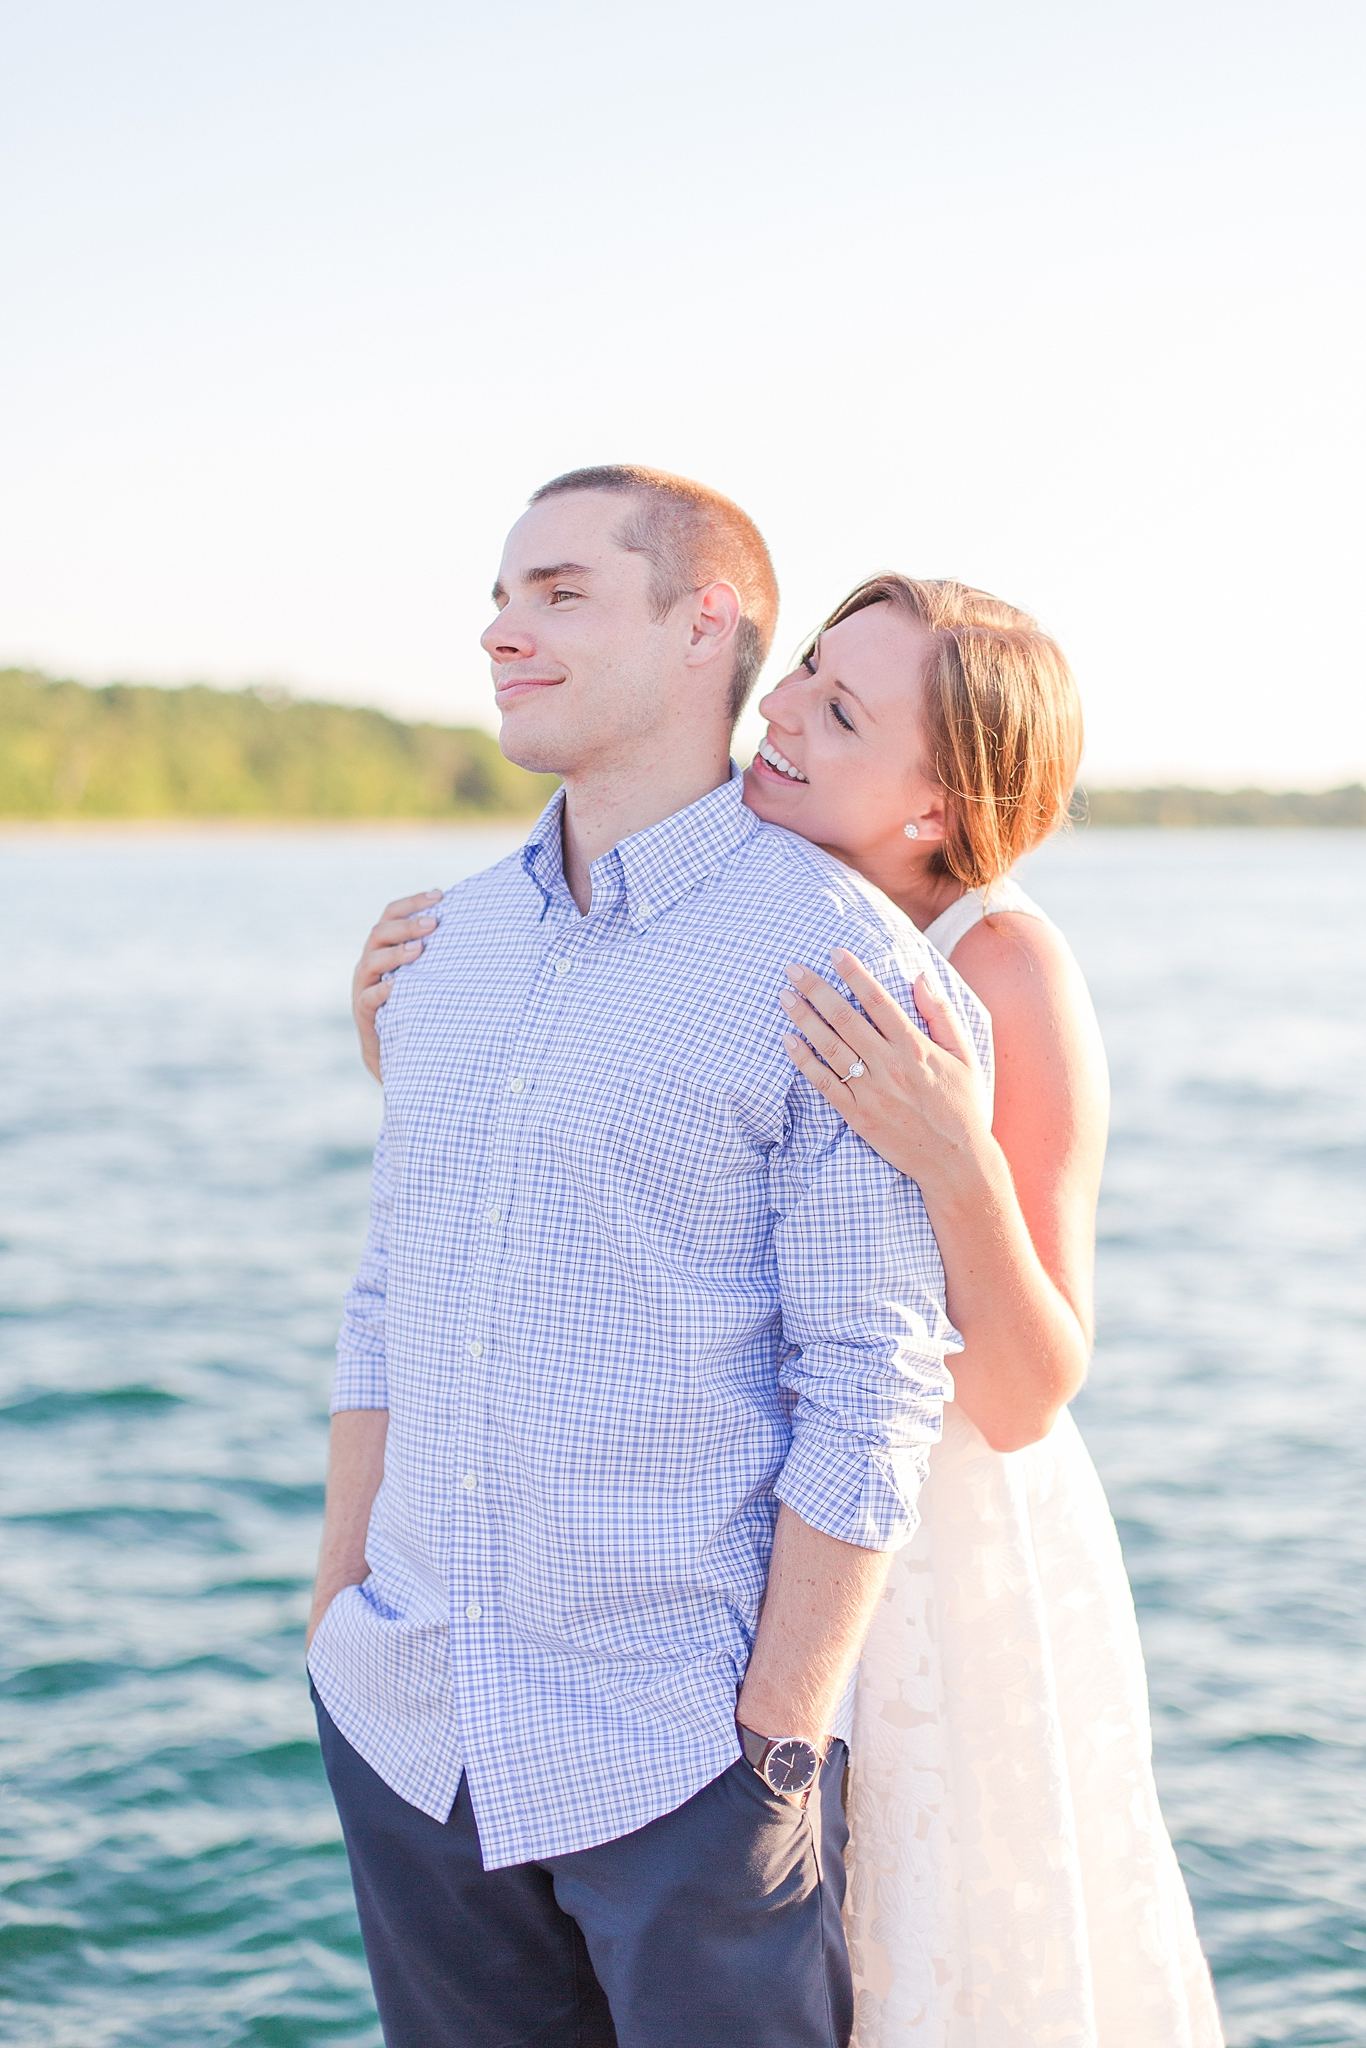 waterfront-lighthouse-engagement-photography-in-charlevoix-mi-by-courtney-carolyn-photography_0014.jpg